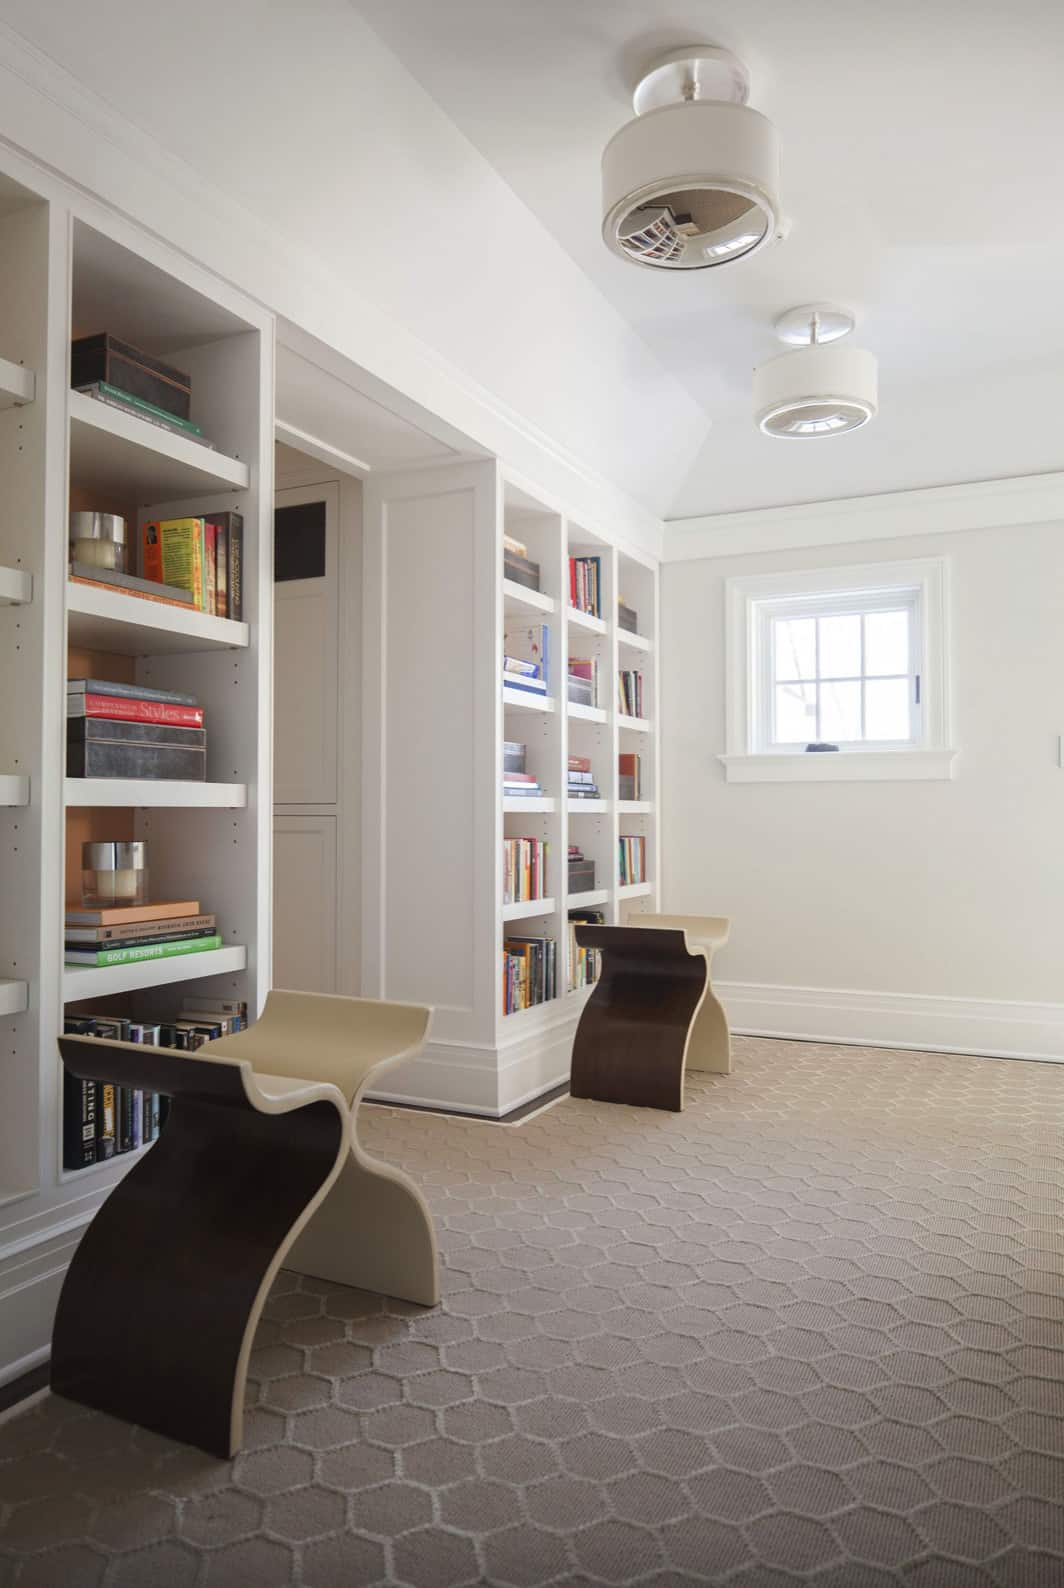 upstairs-hallway-landing-with-bookcases